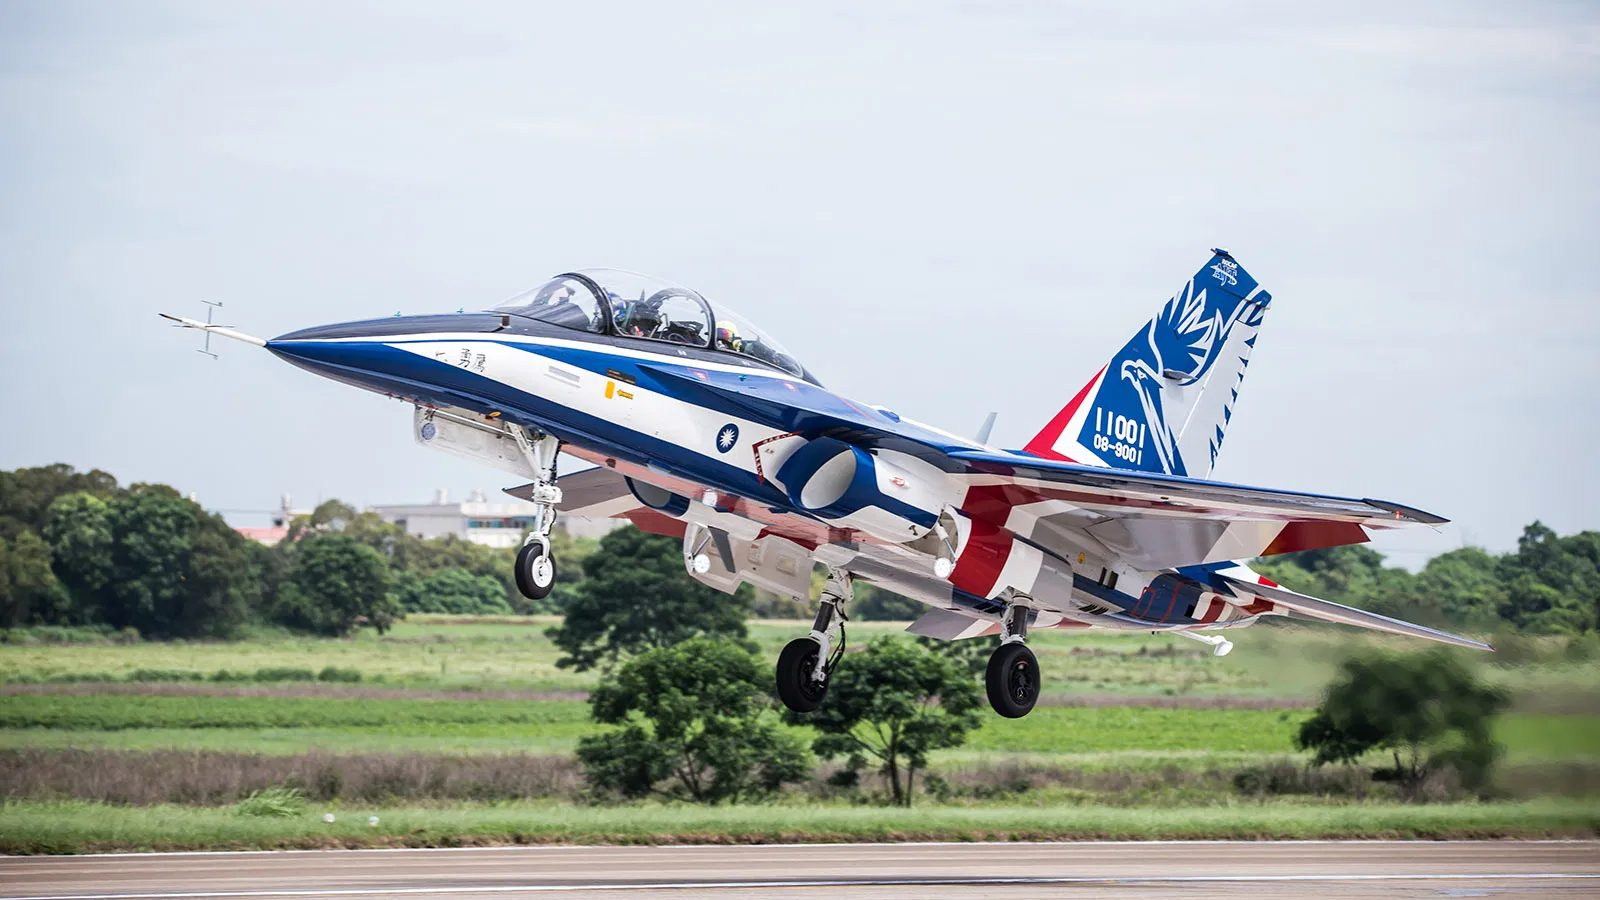 Taiwan's developped T-5 Brave Eagle Advanced Jet Trainer Conducts First Flight